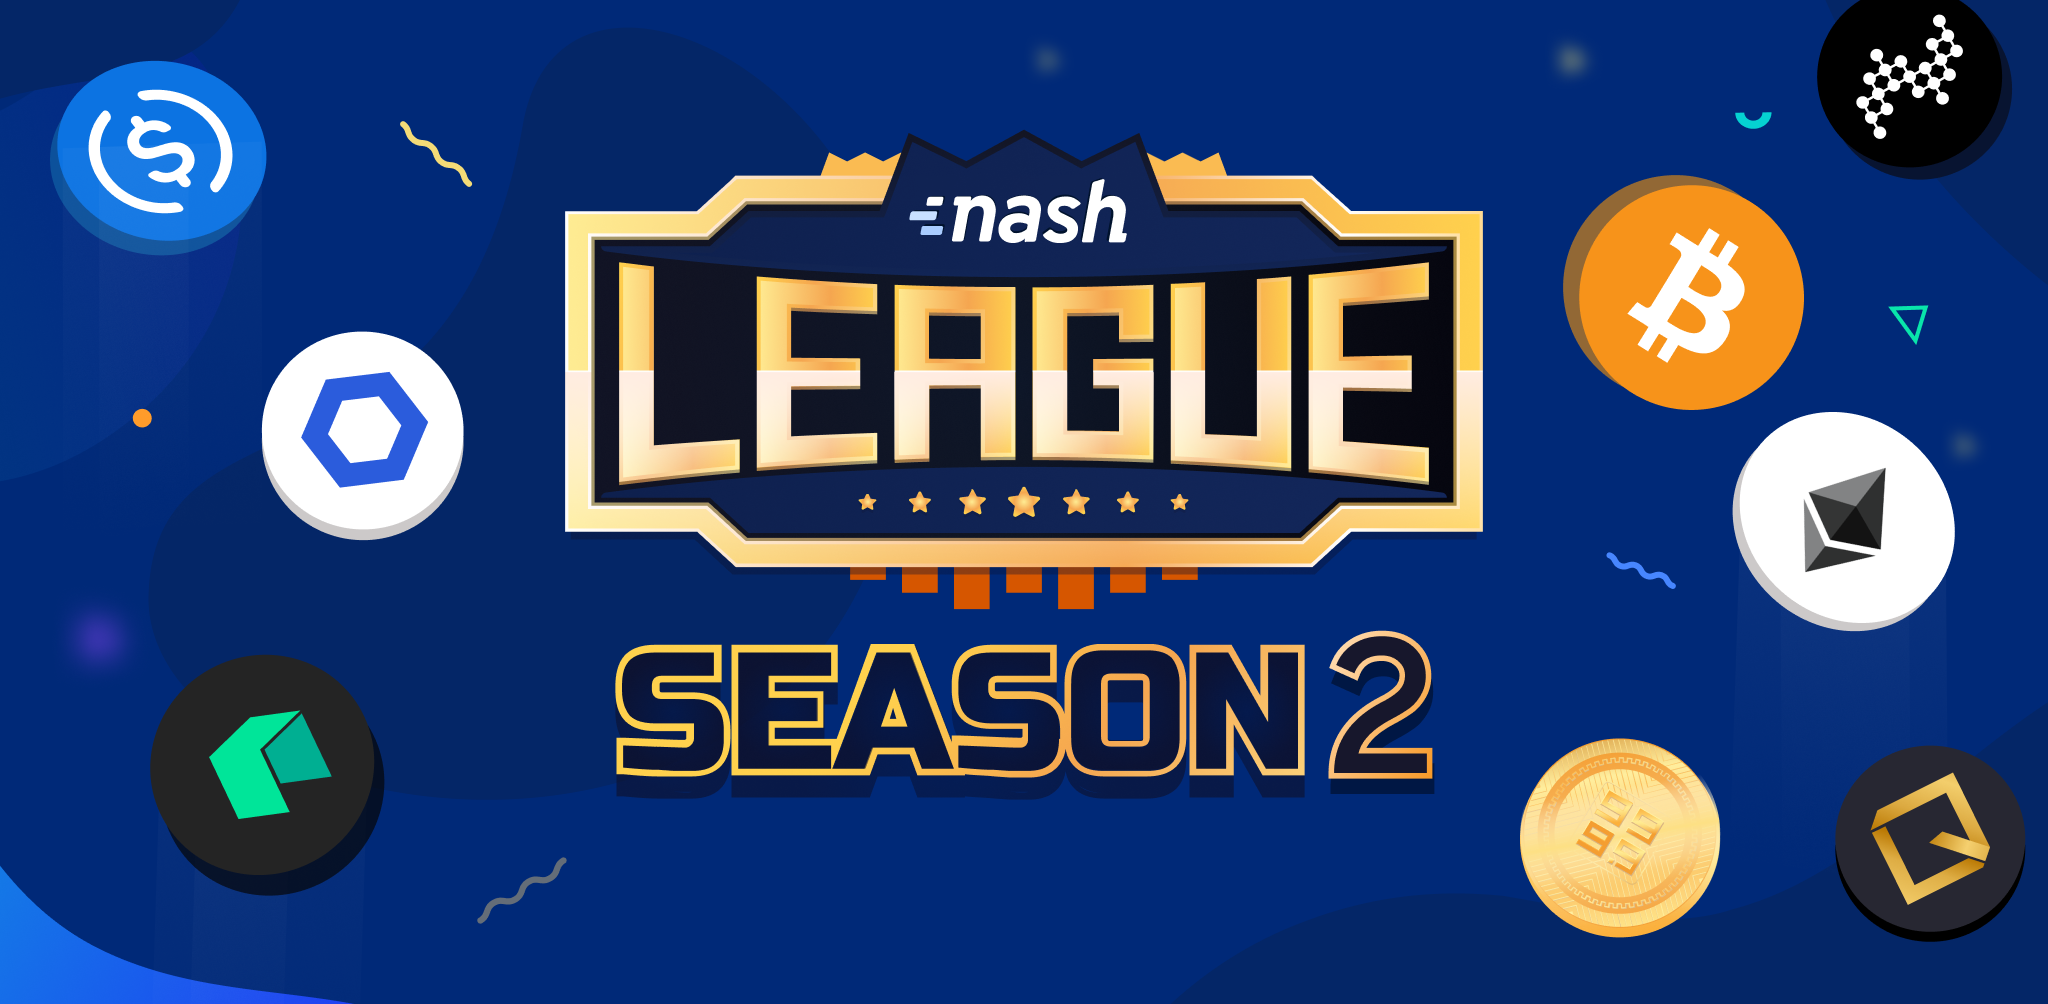 Nash League Season 2: $10,000 new prizes for $10M volume!